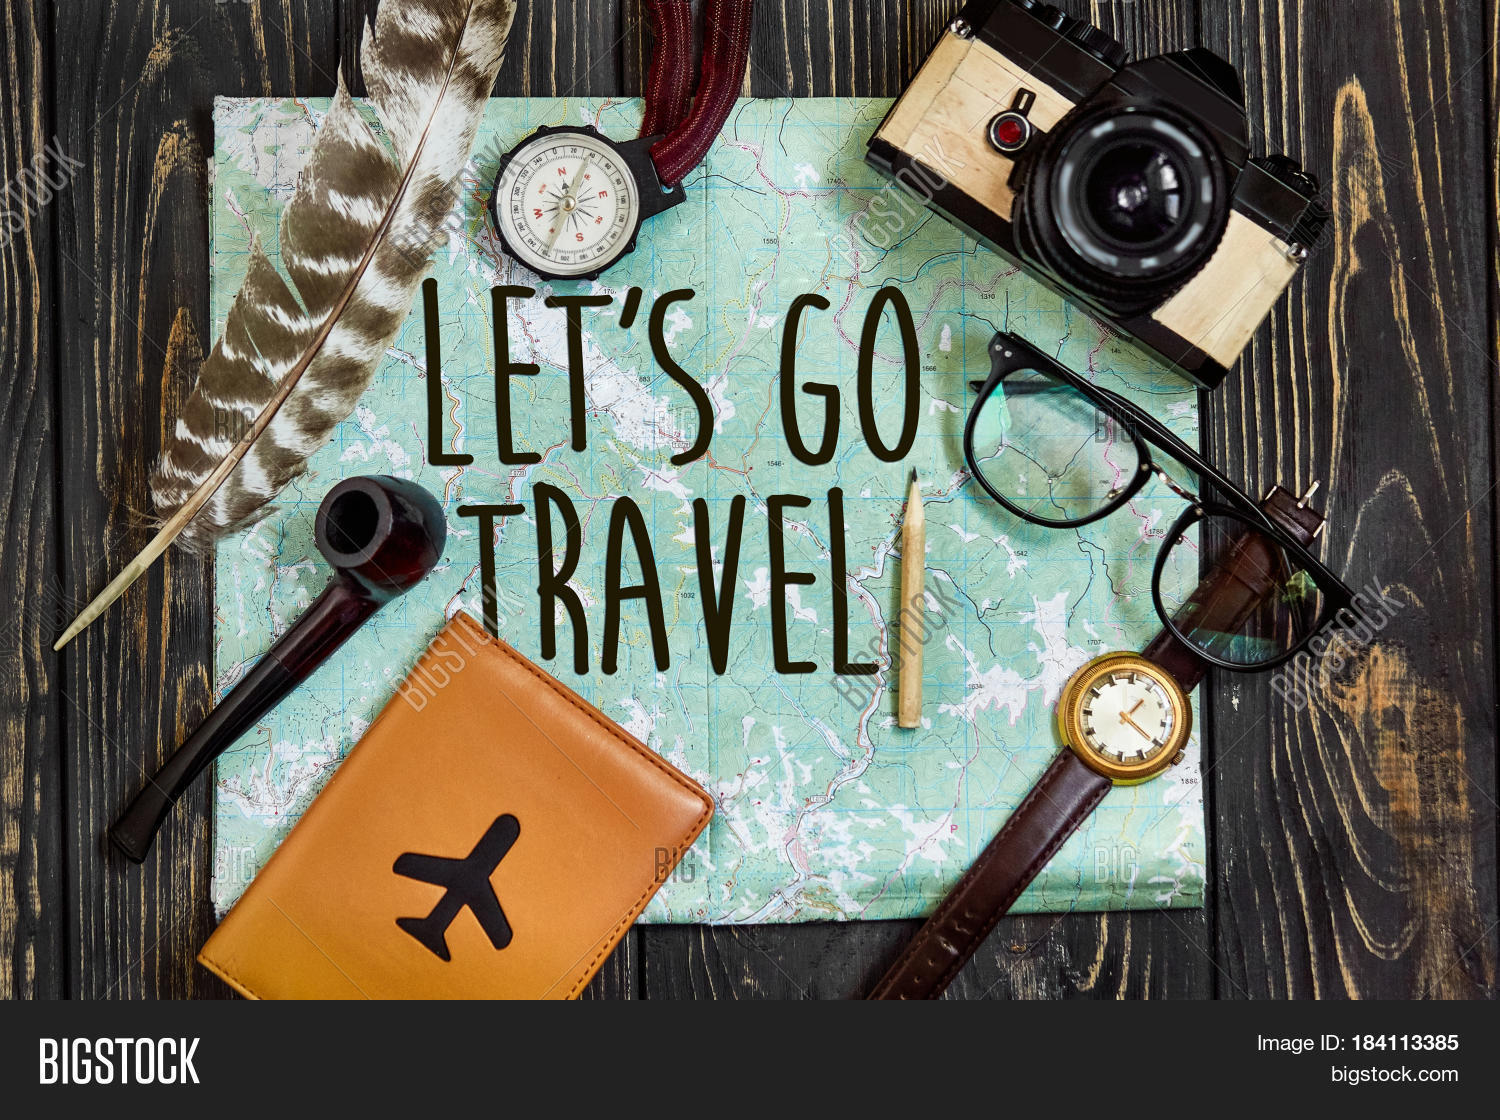 Travel Let S Go Image Photo Free Trial Bigstock